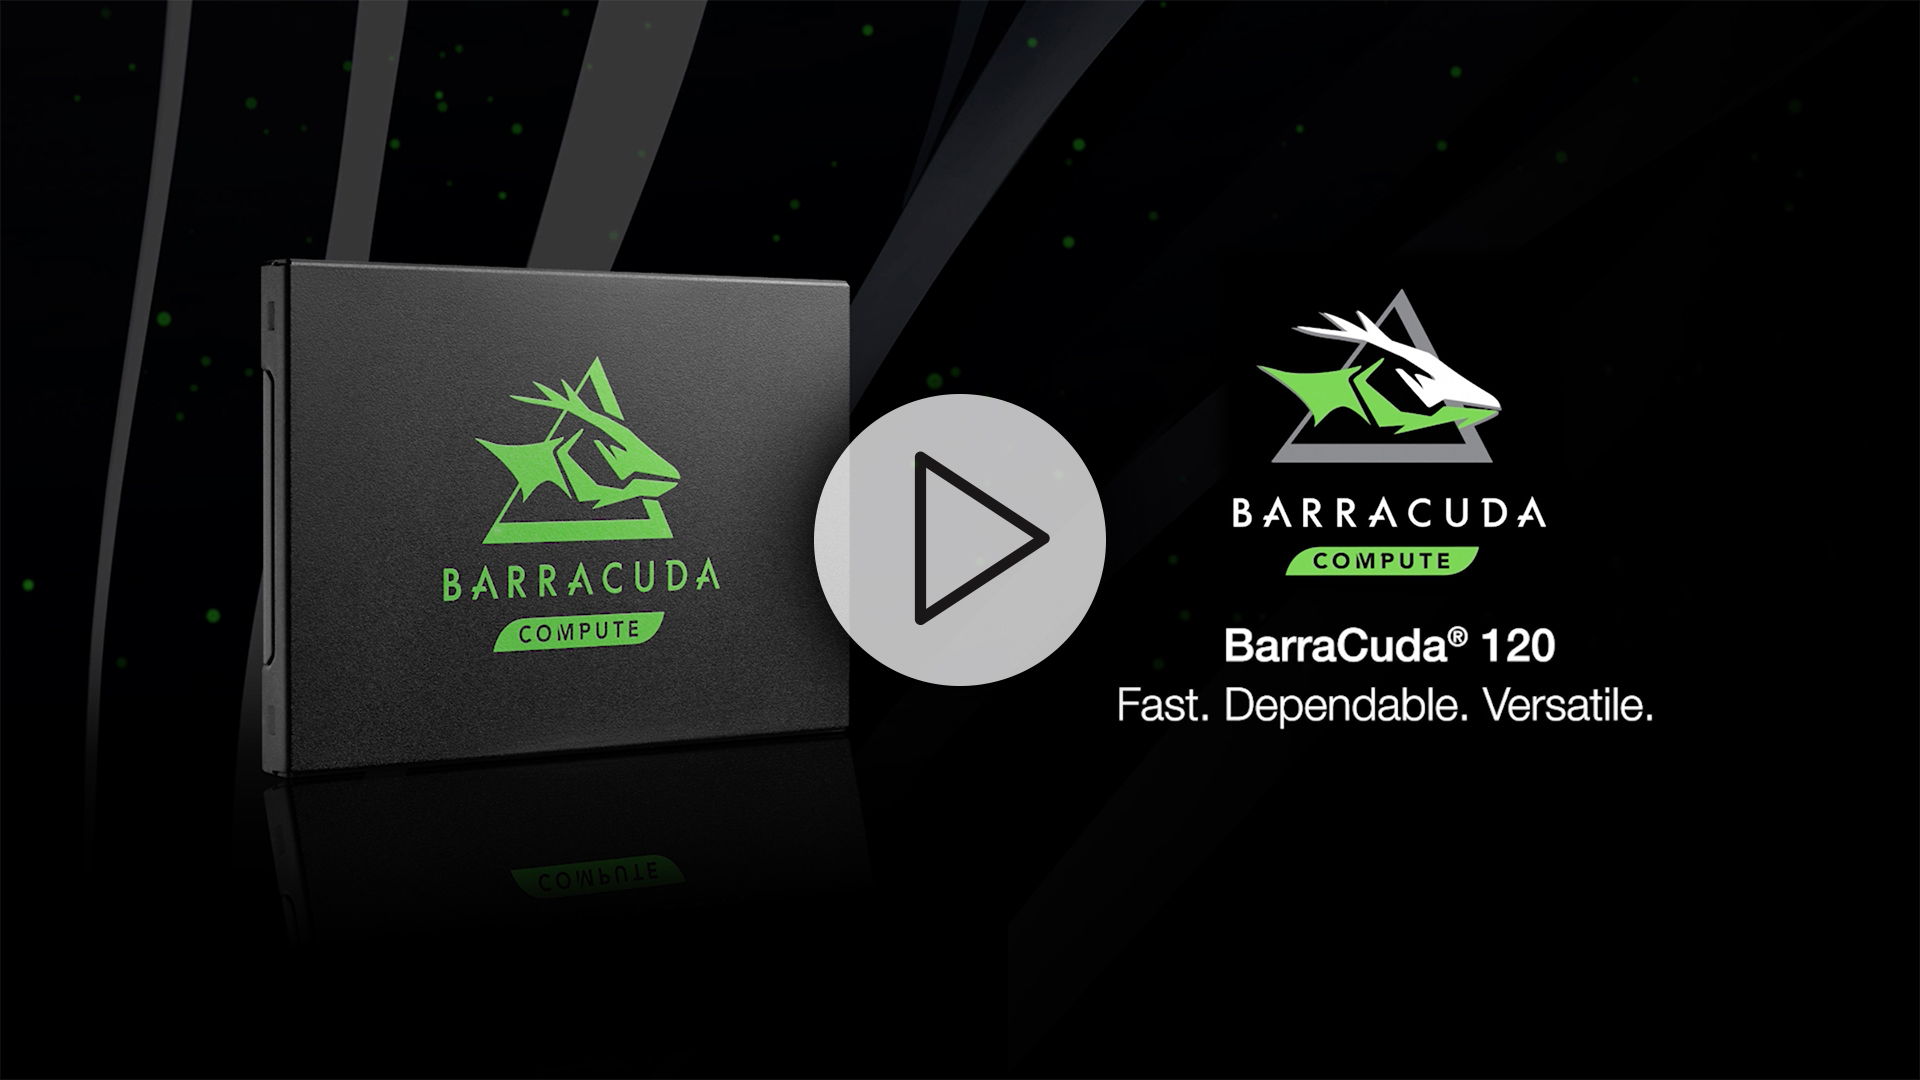 Seagate BarraCuda 120 SSD Product video screenshot